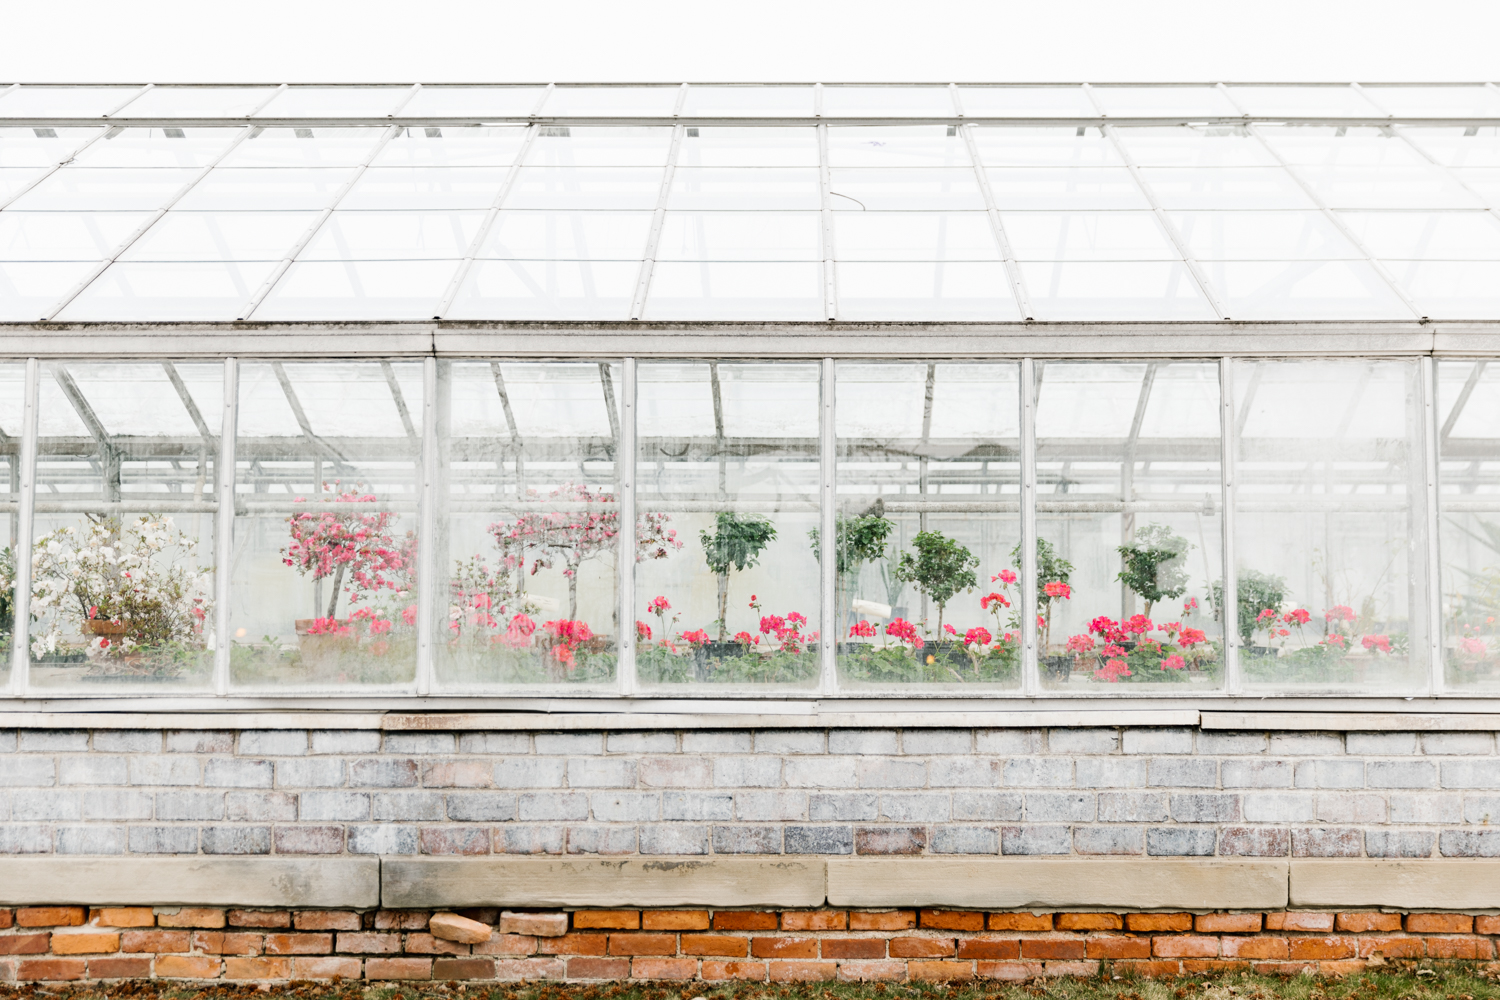 A photo of a greenhouse at the Belle Isle Conservatory in Detroit, Michigan.